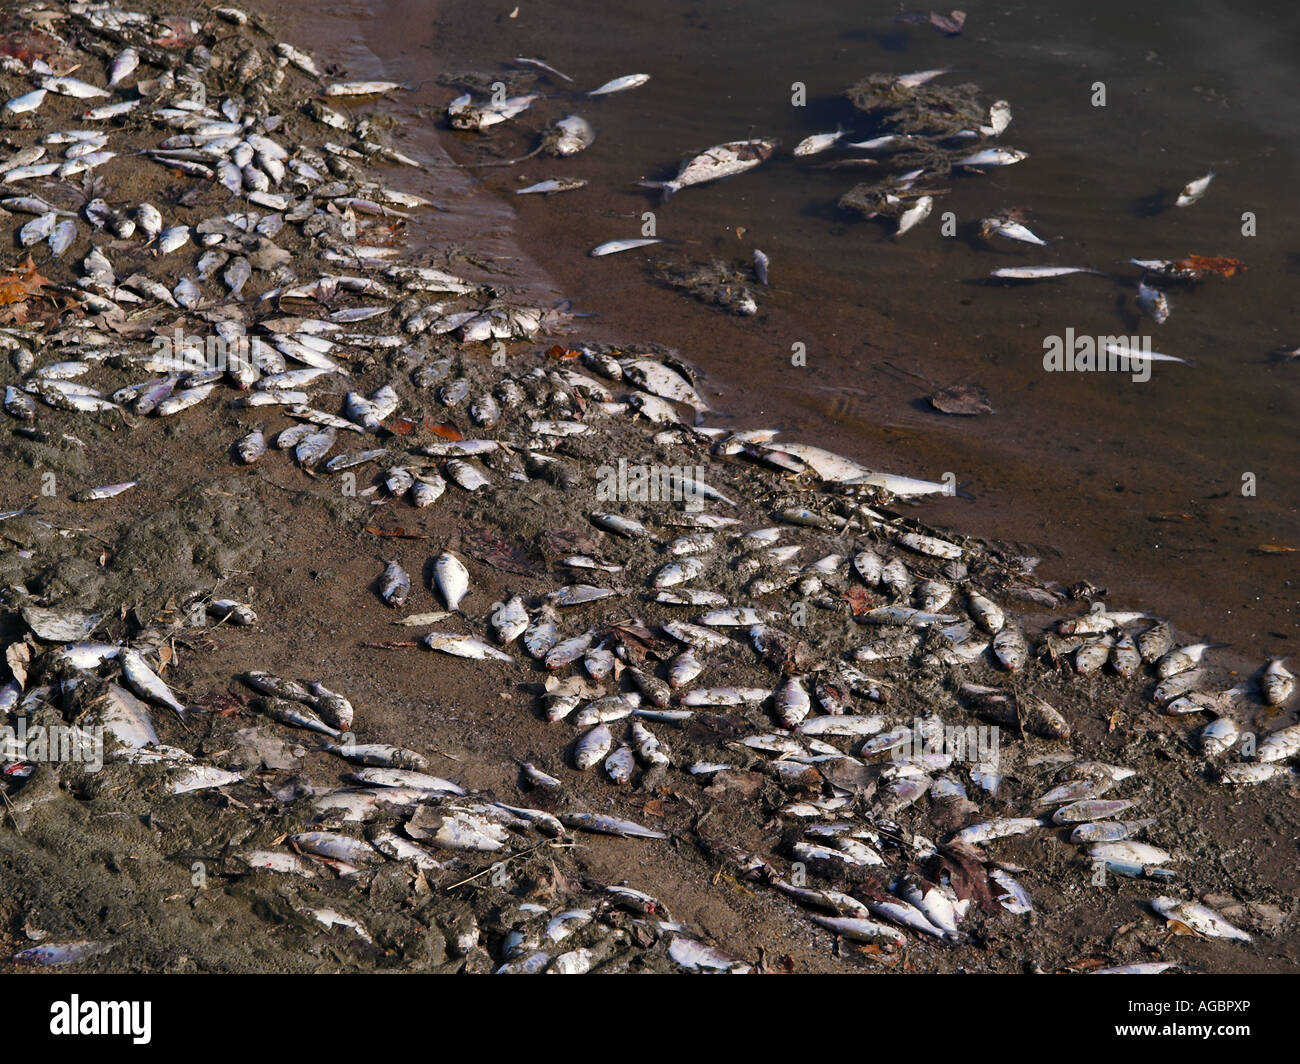 dead fish pollution garbage - Stock Image